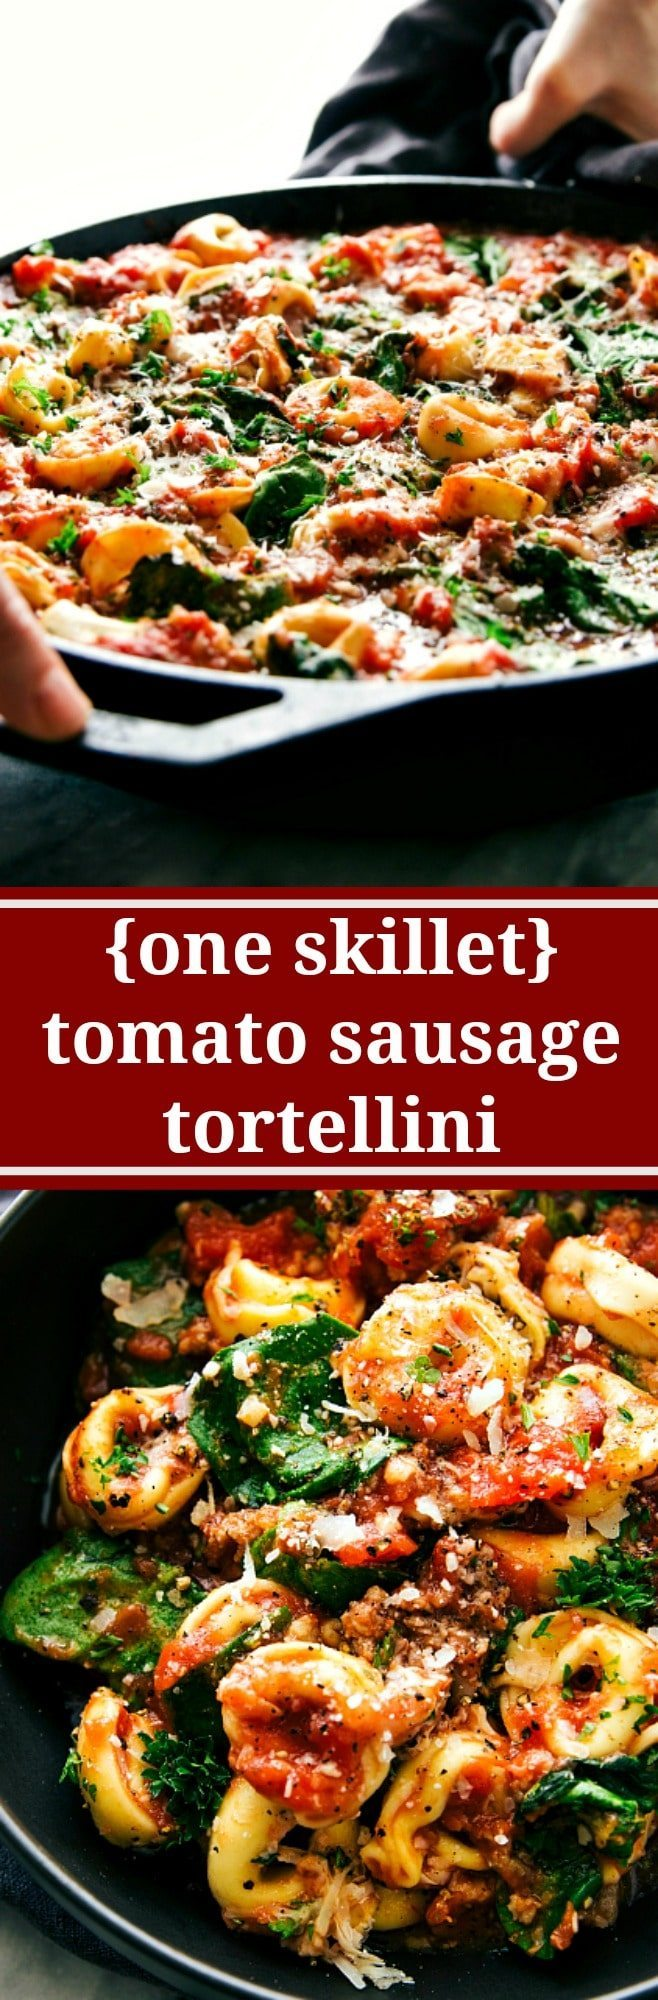 A super easy, 15-minute prep, ONE SKILLET tomato tortellini with sausage. This is an easy family-friendly meal!